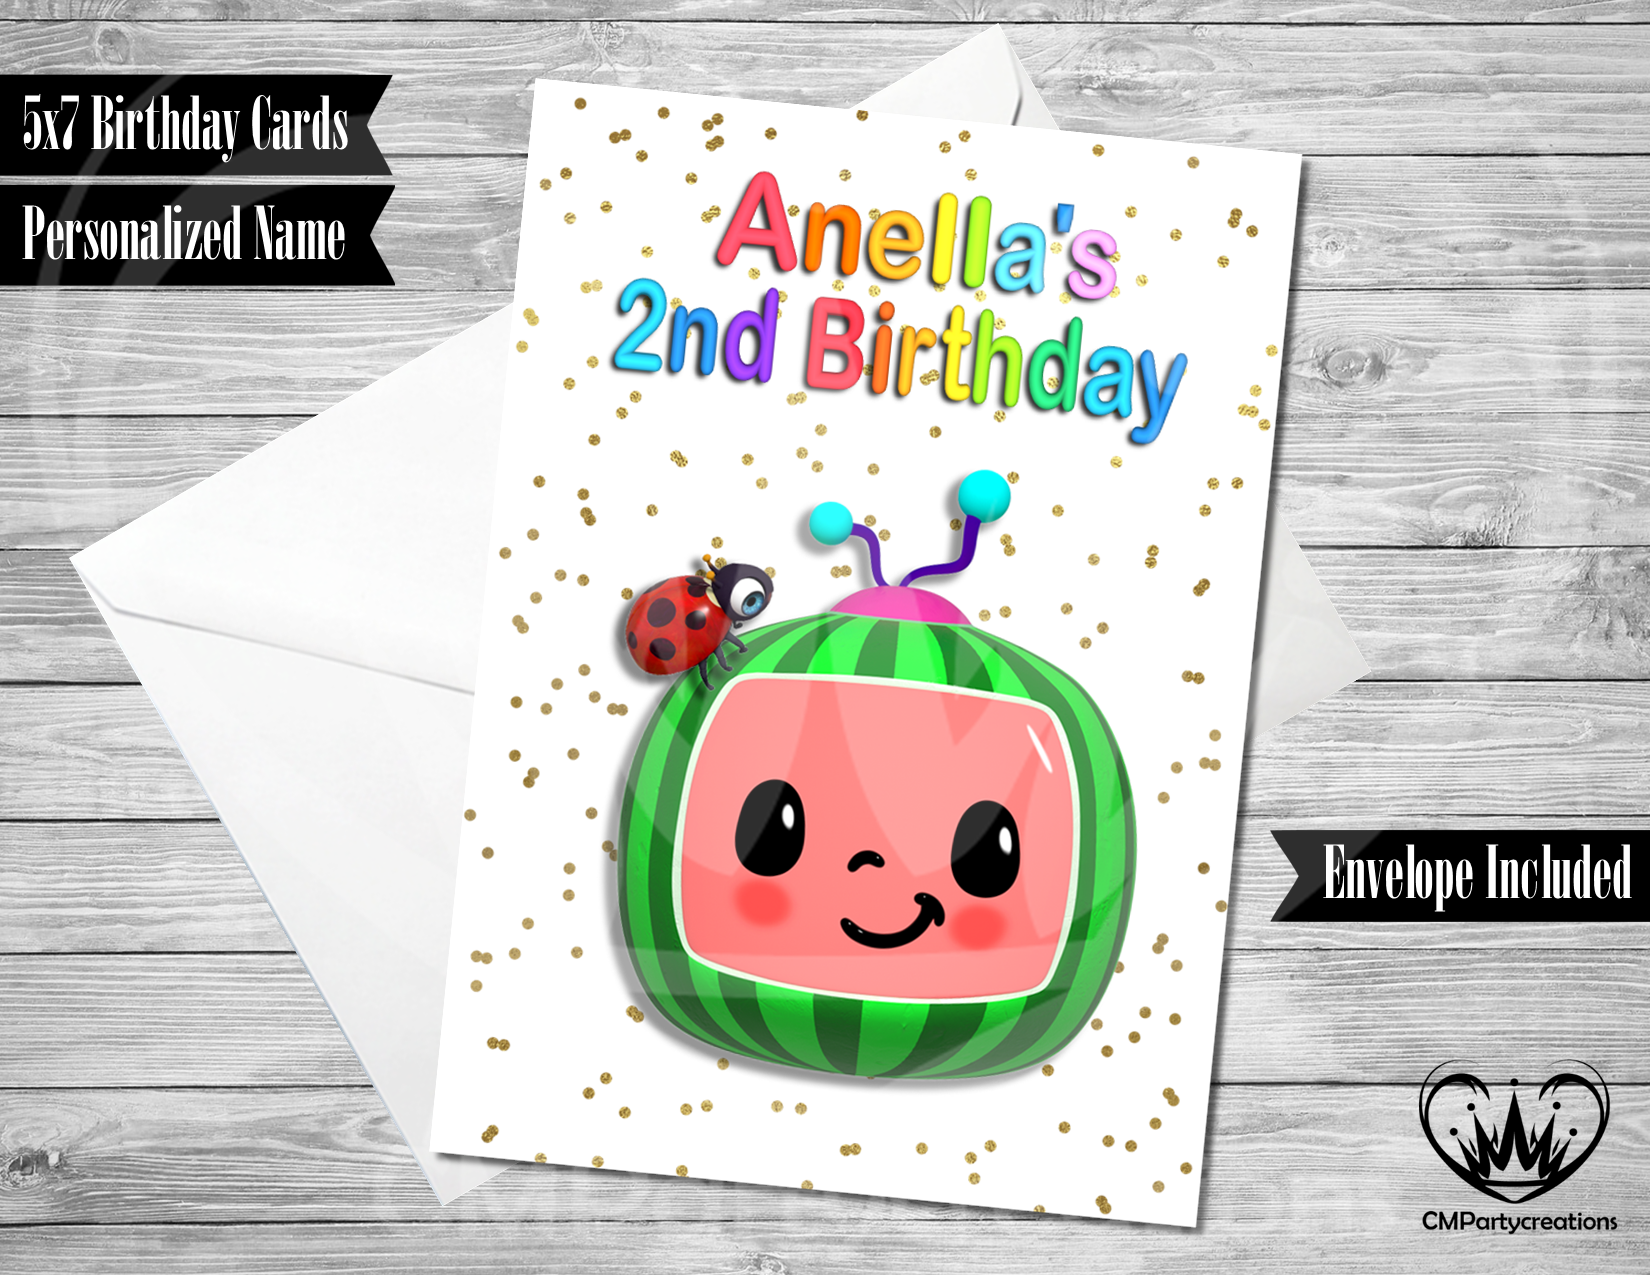 cocomelon personalized birthday card  cmpartycreations